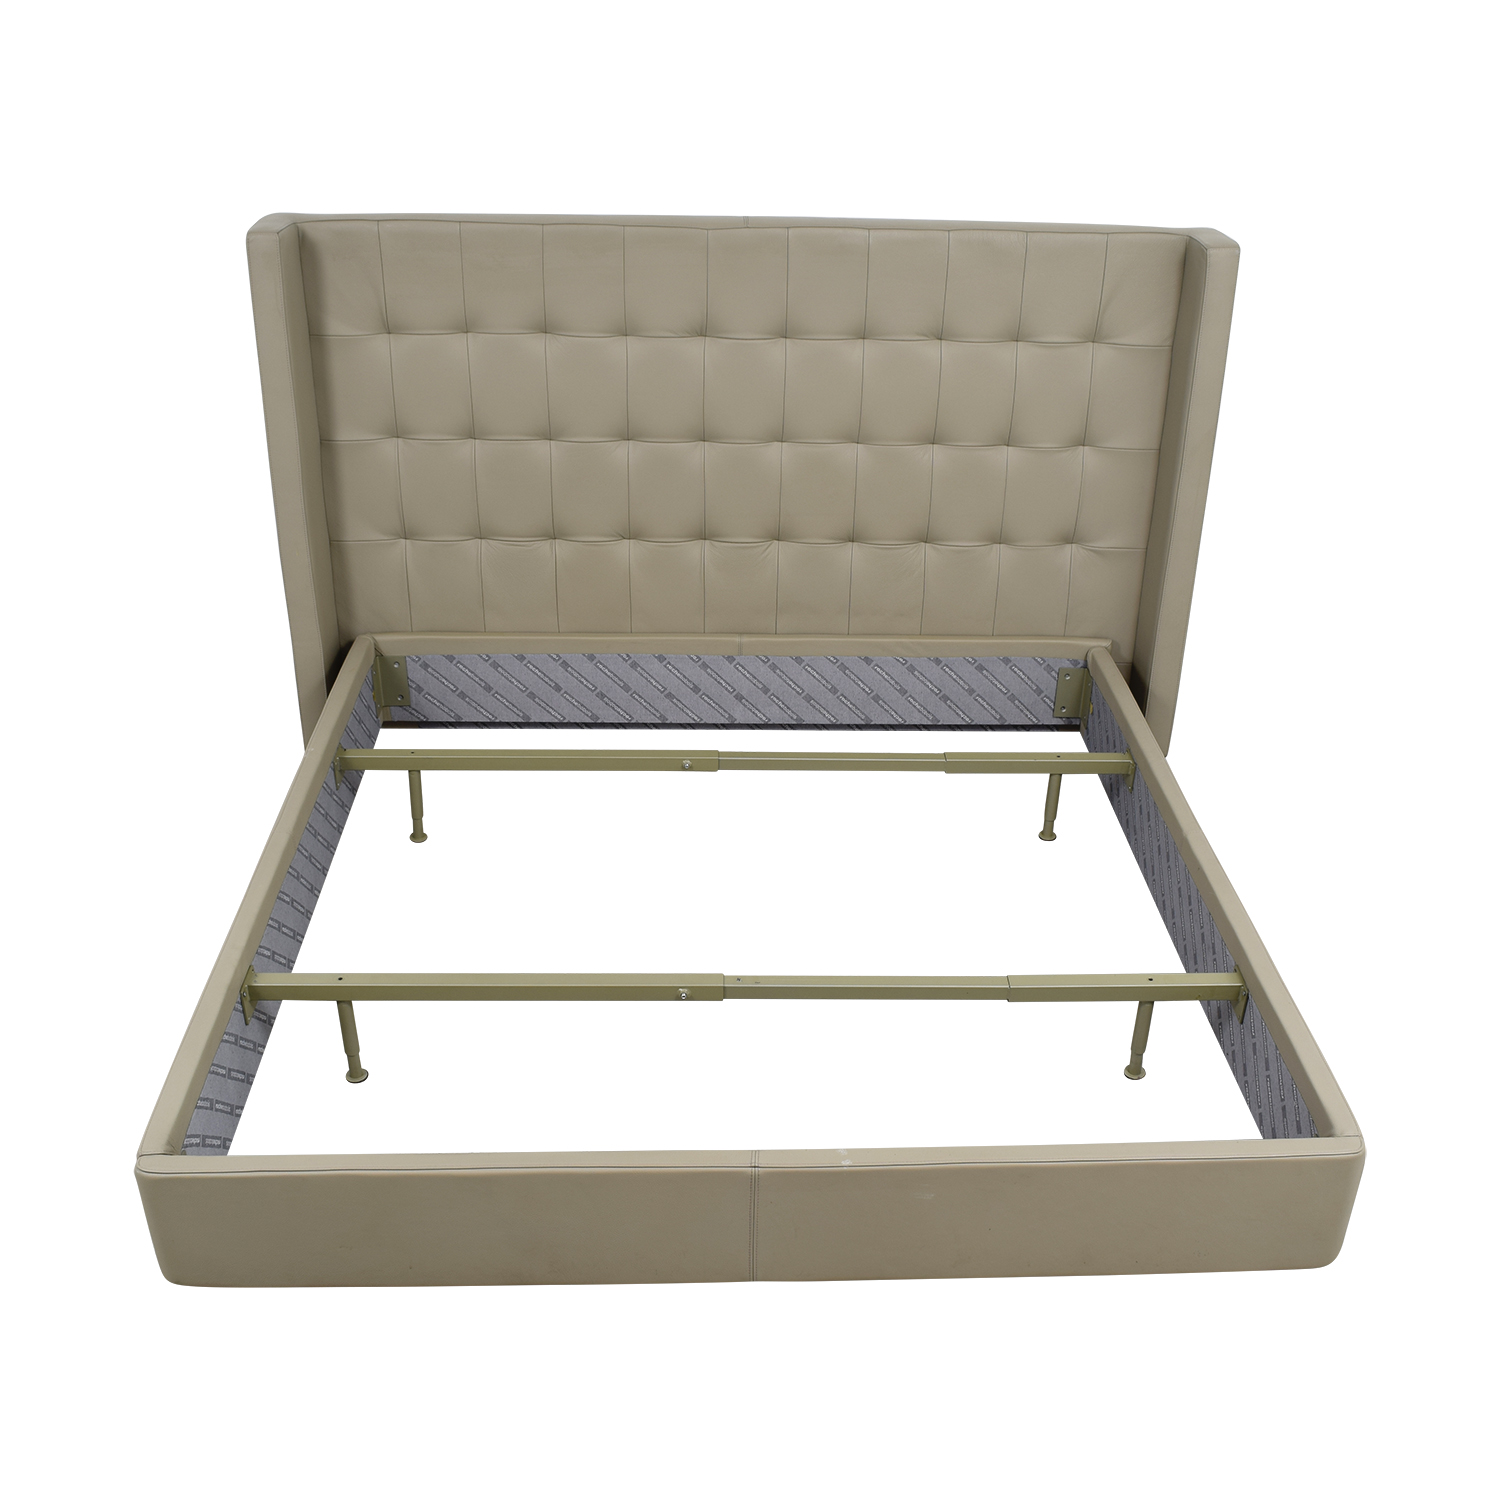 Roche Bobois King Beige Tufted Leather Bed Frame / Beds